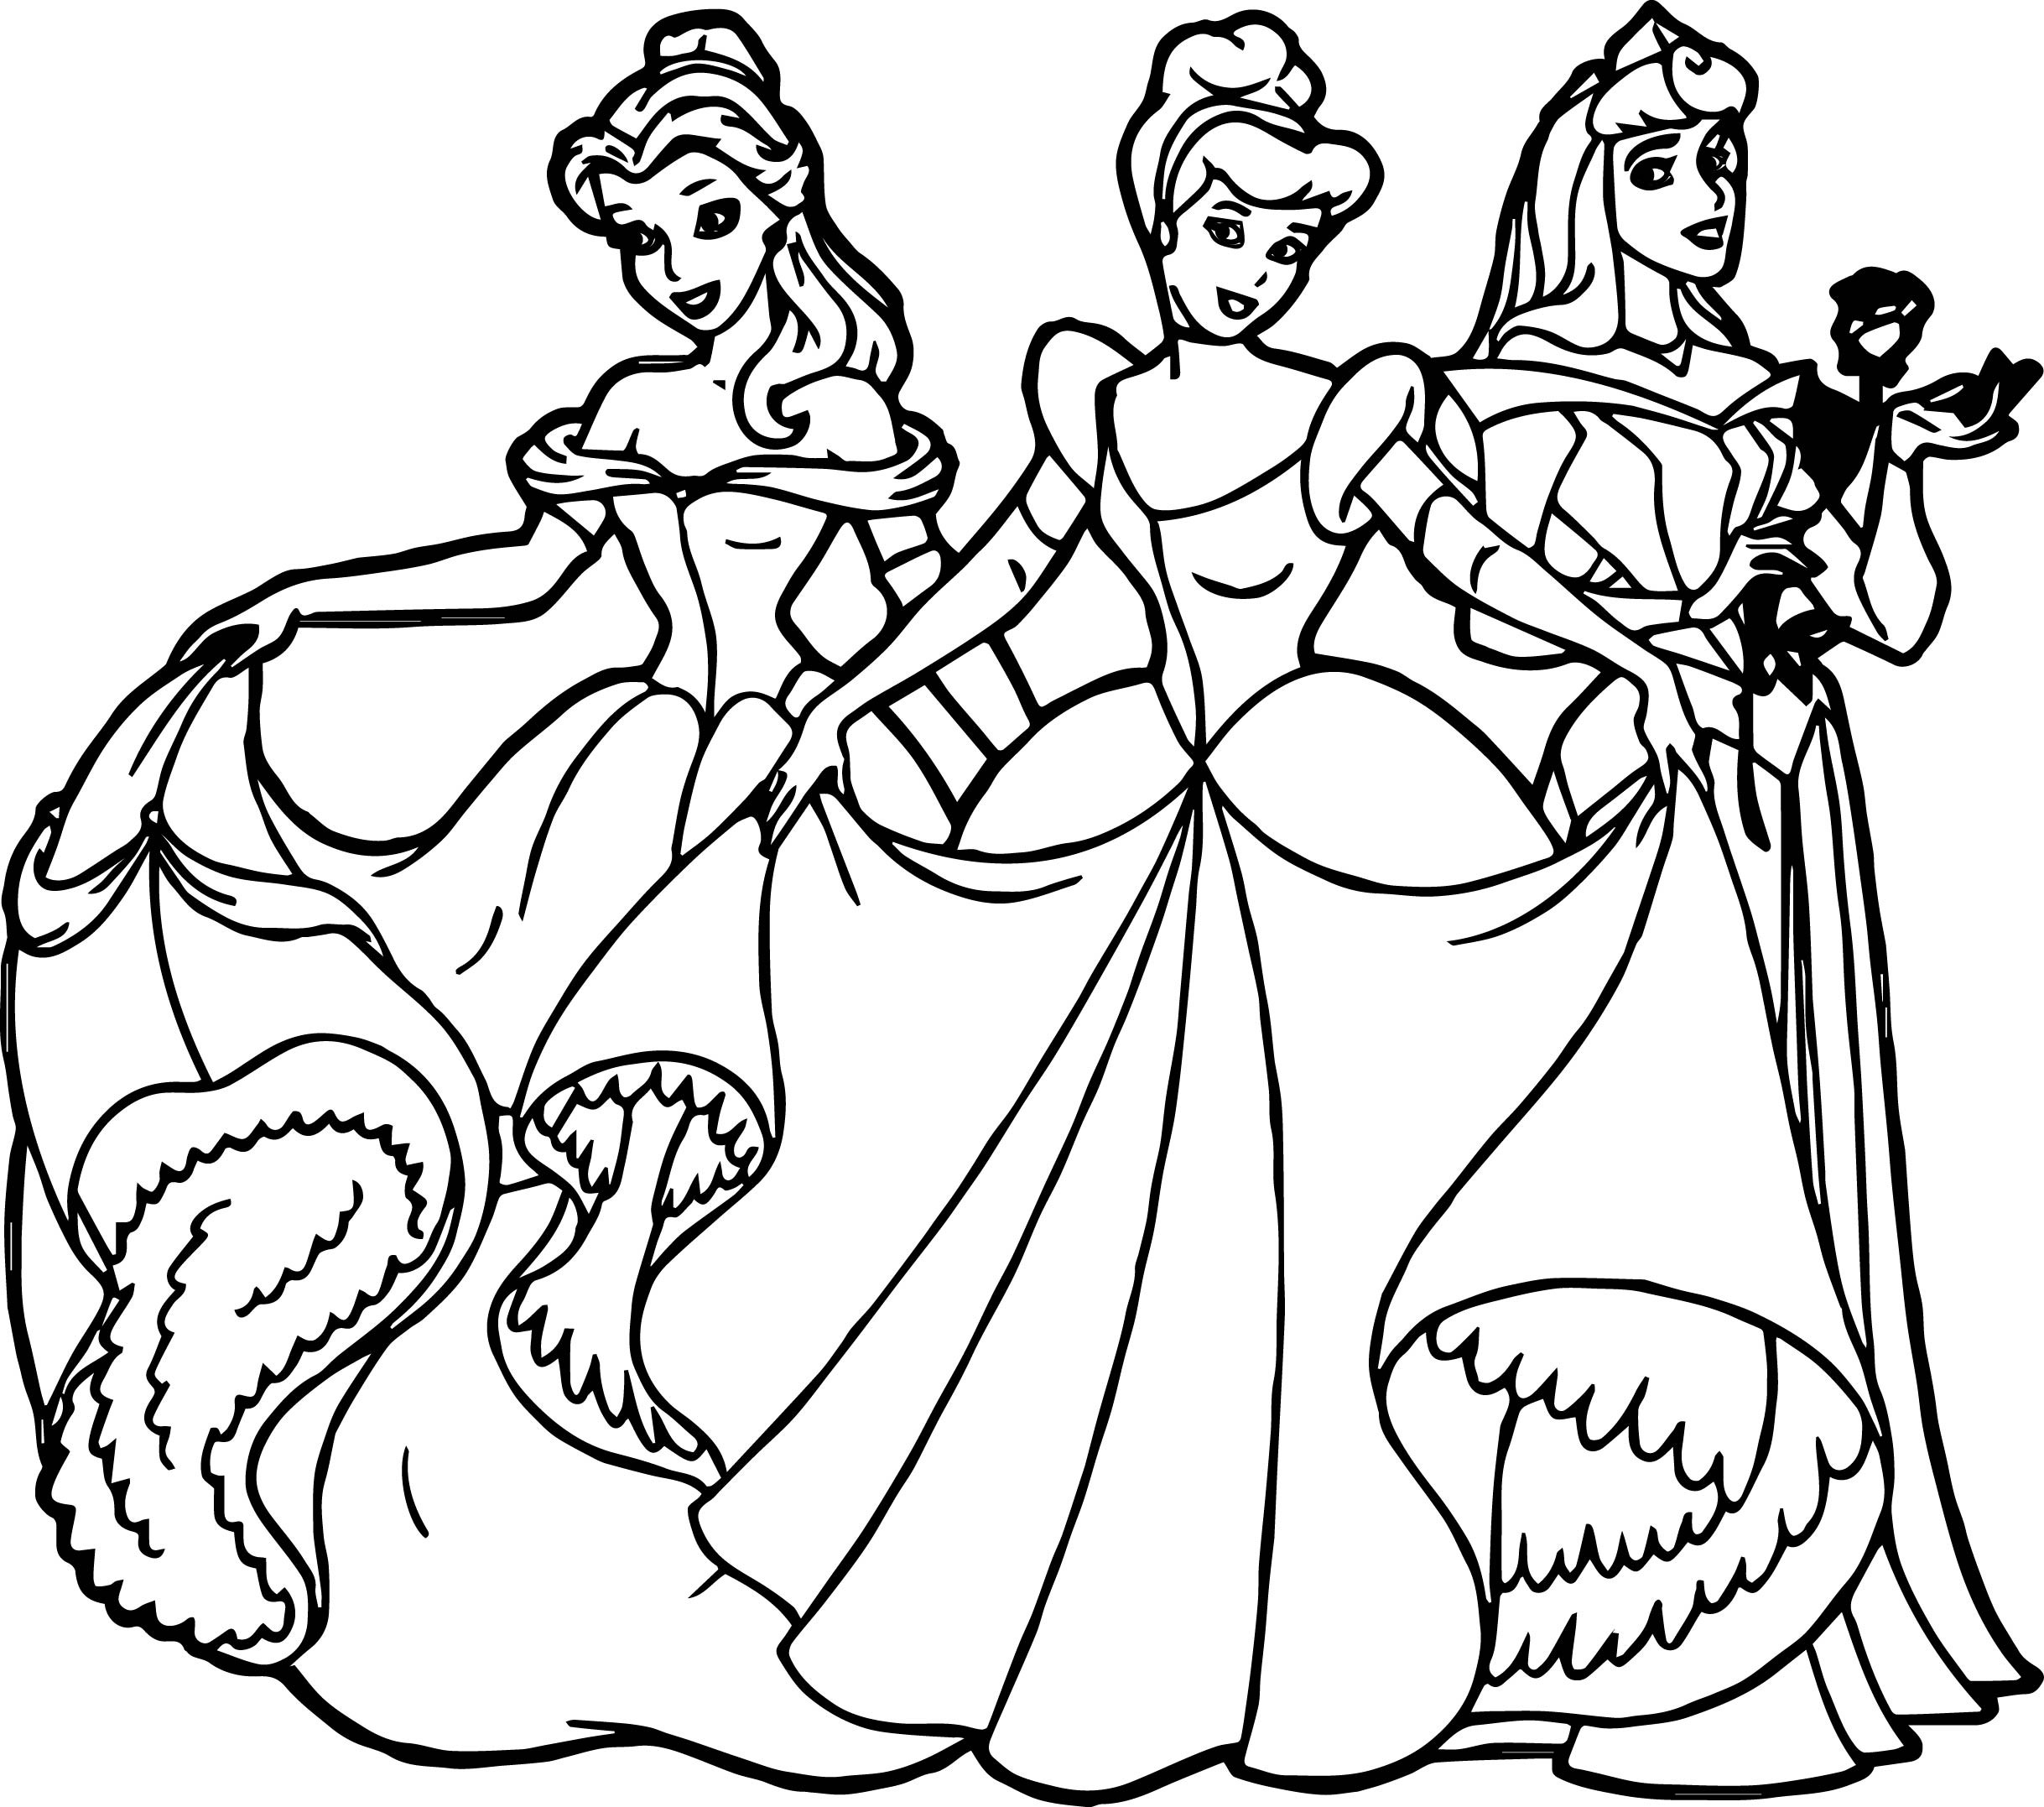 2437x2154 Elegant Princess Palace Pets Coloring Pages Card And Coloring Page